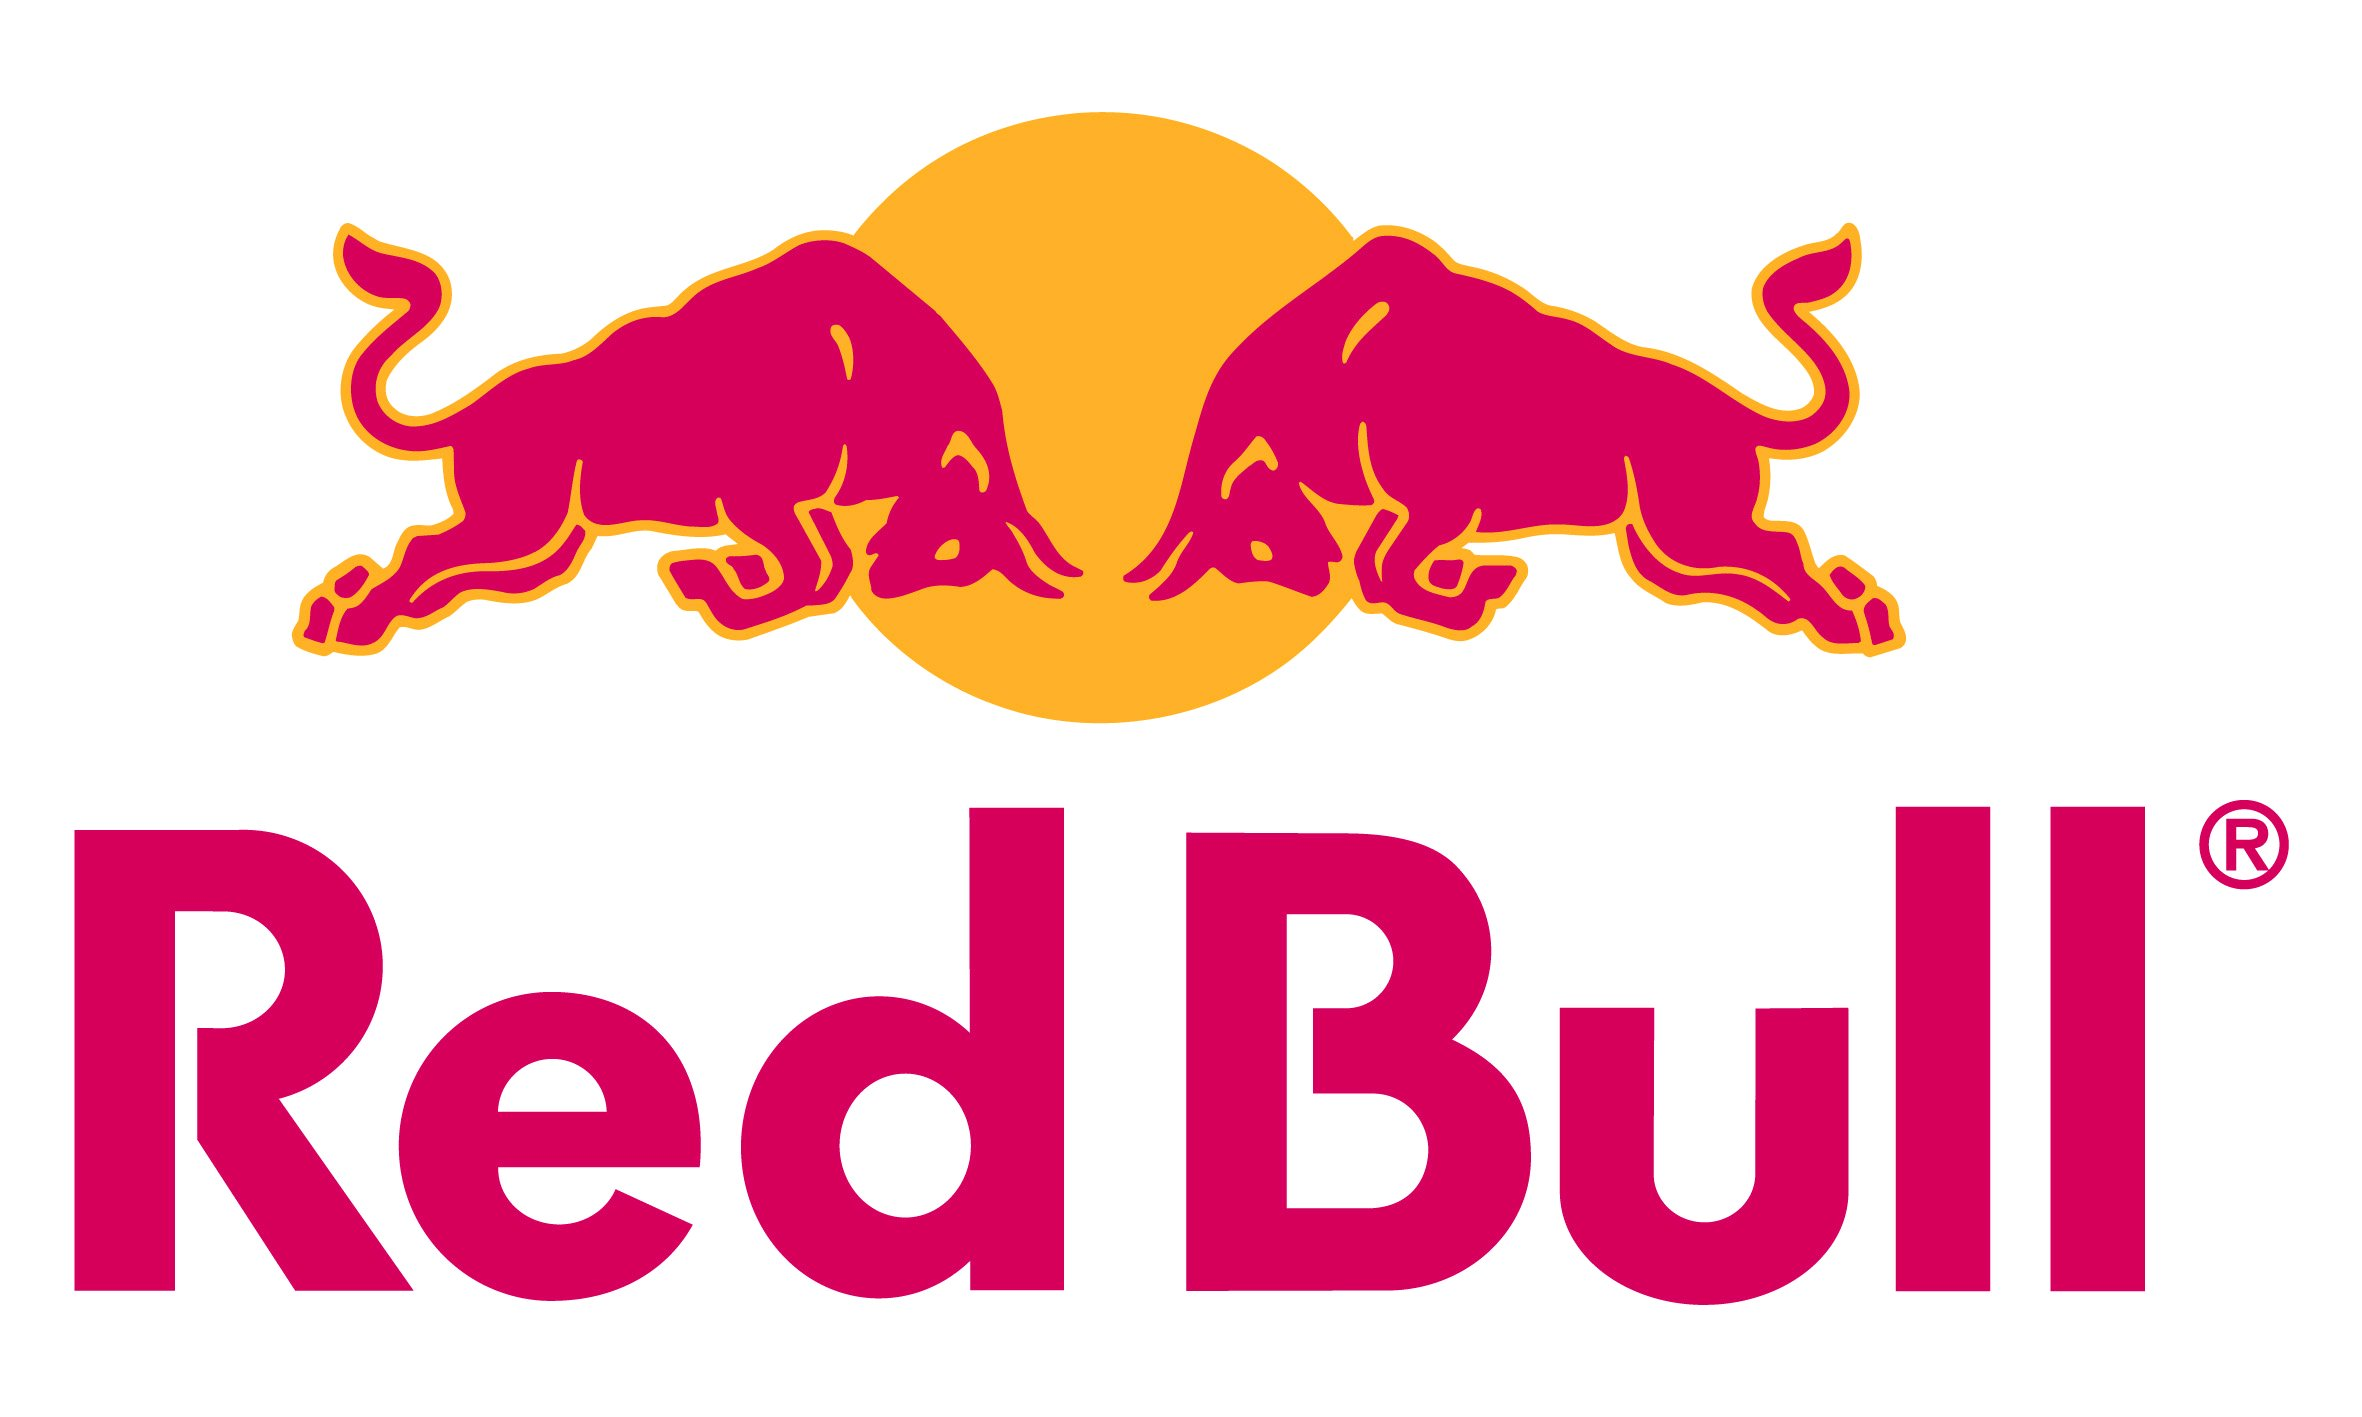 Adidas clipart red bull Wallpapers Wallpapers Red  Bull